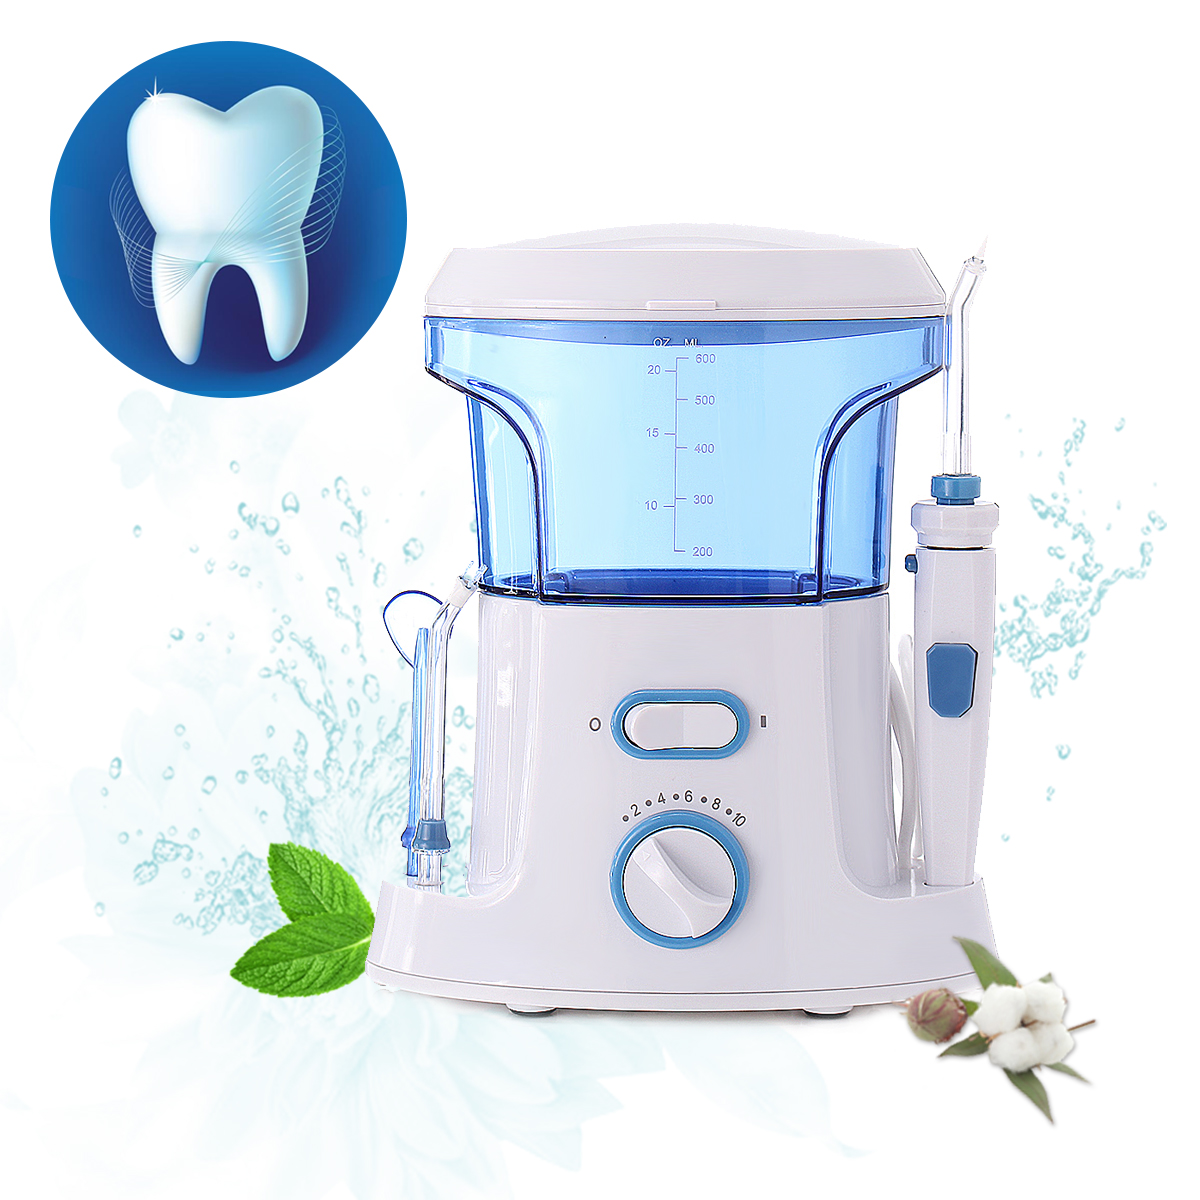 1Pcs 600ml Oral Irrigator Dental Flosser Water Dental Floss Water Irrigator Tooth Pick Dental Water Jet Oral Teeth Care 100pcs water flosser flycat fc168 oral irrigator 600ml tank 8pcs jet tips dental flosser power water jet protable oral deep